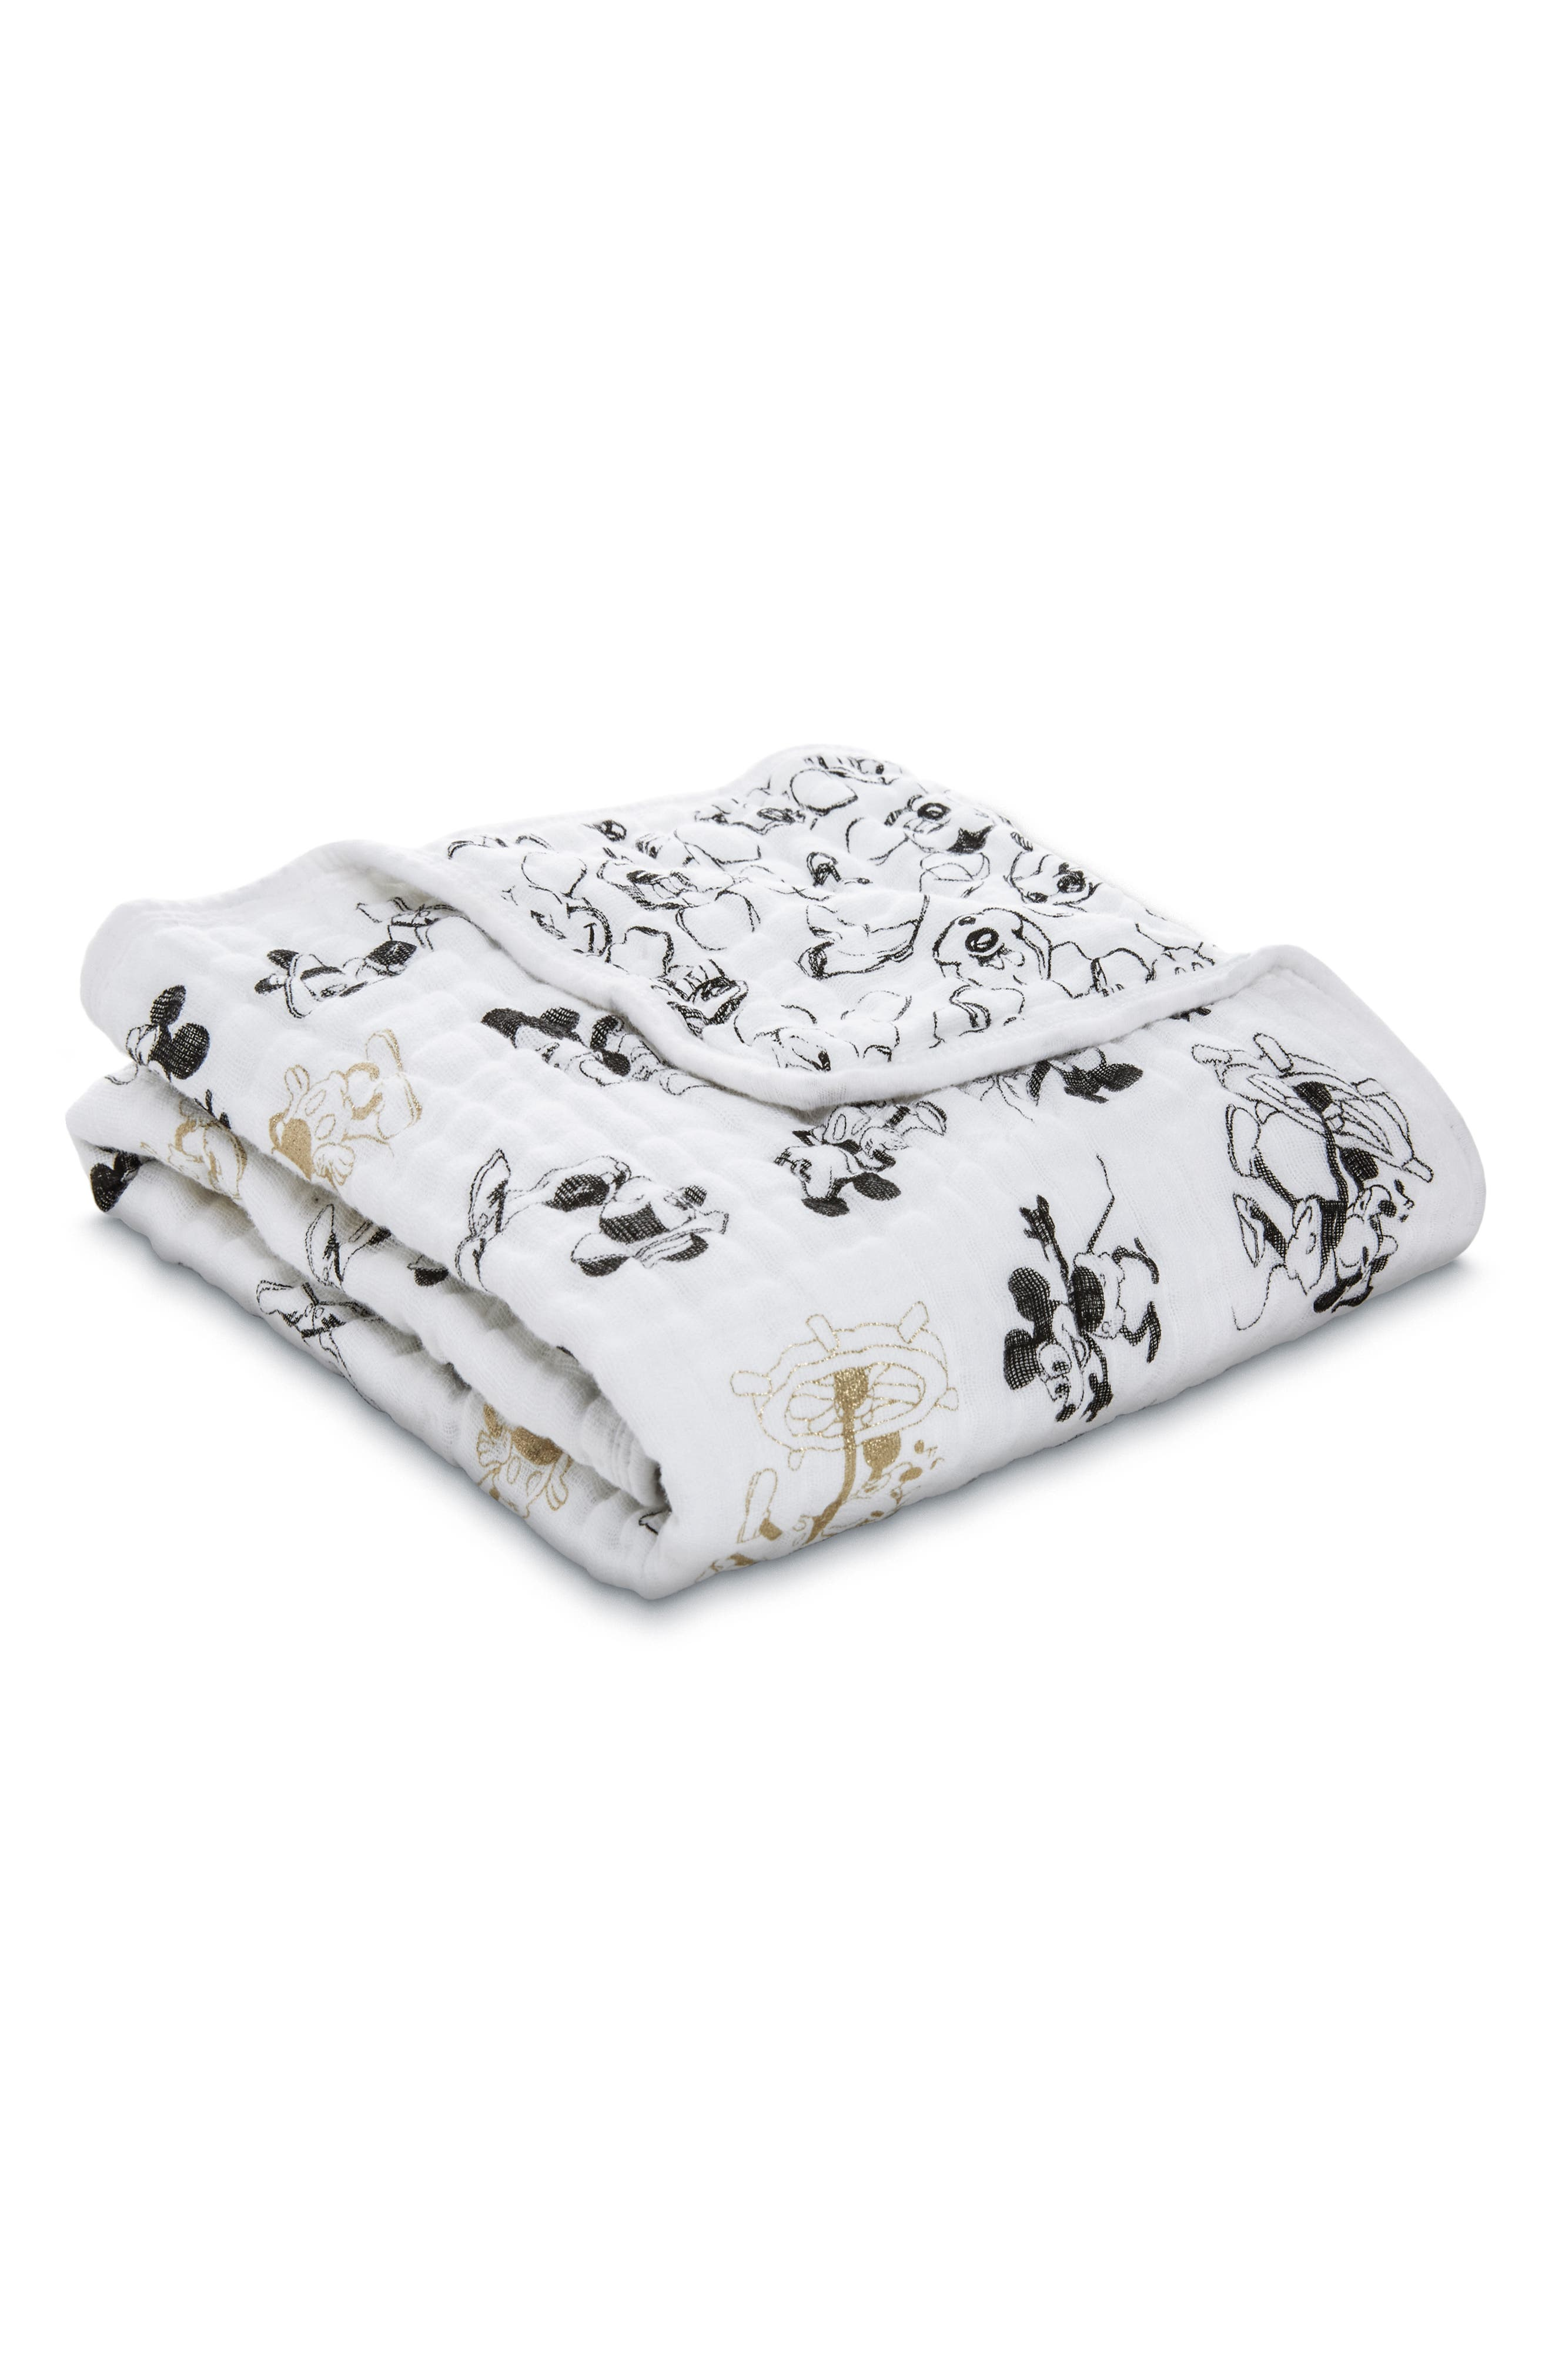 Disney<sup>®</sup> Mickey's 90th Muslin Stroller Blanket, Main, color, BLACK AND GOLD